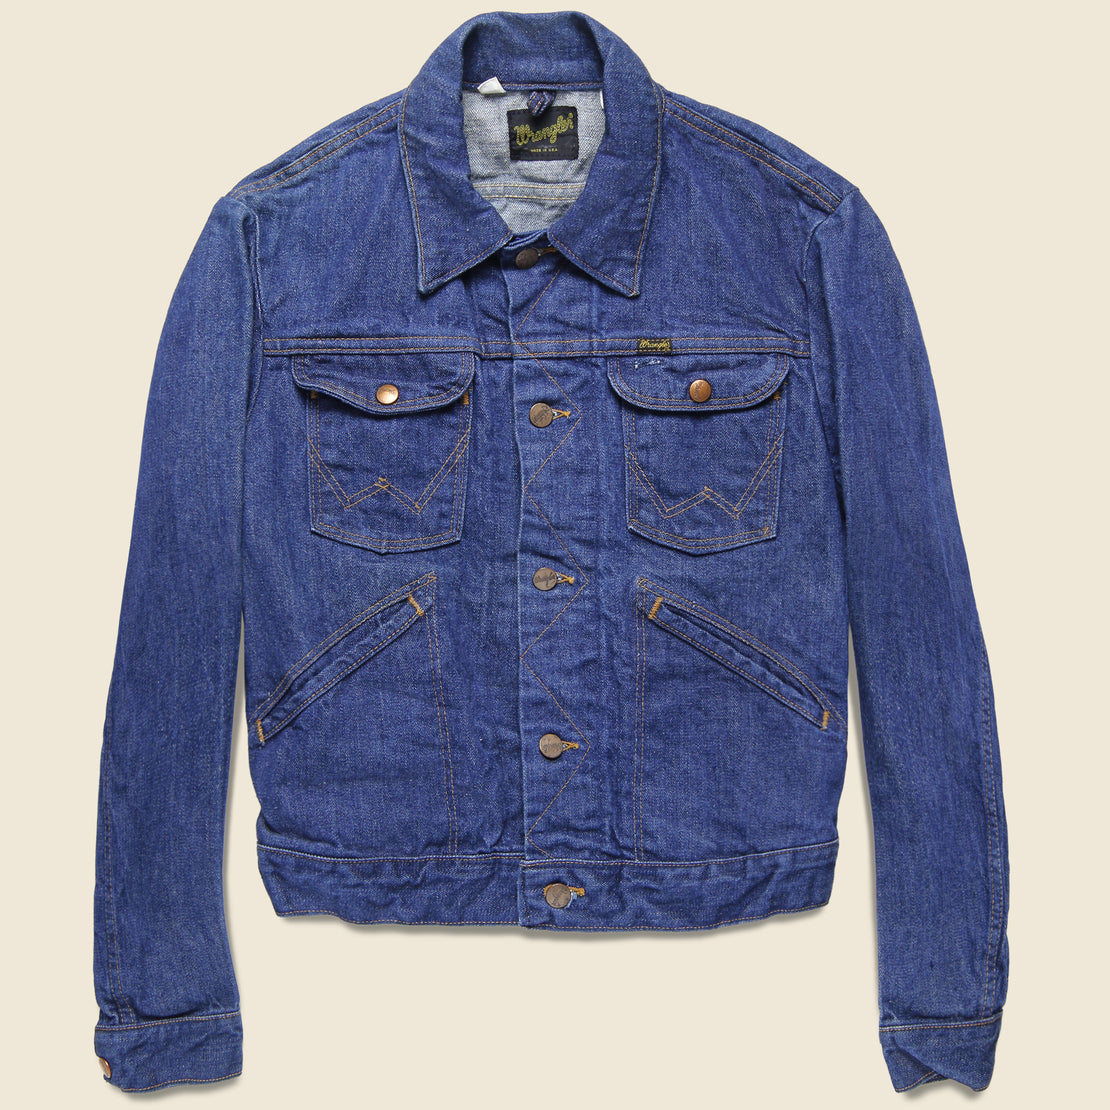 Vintage Wrangler Selvedge Denim Jacket - Dark Wash